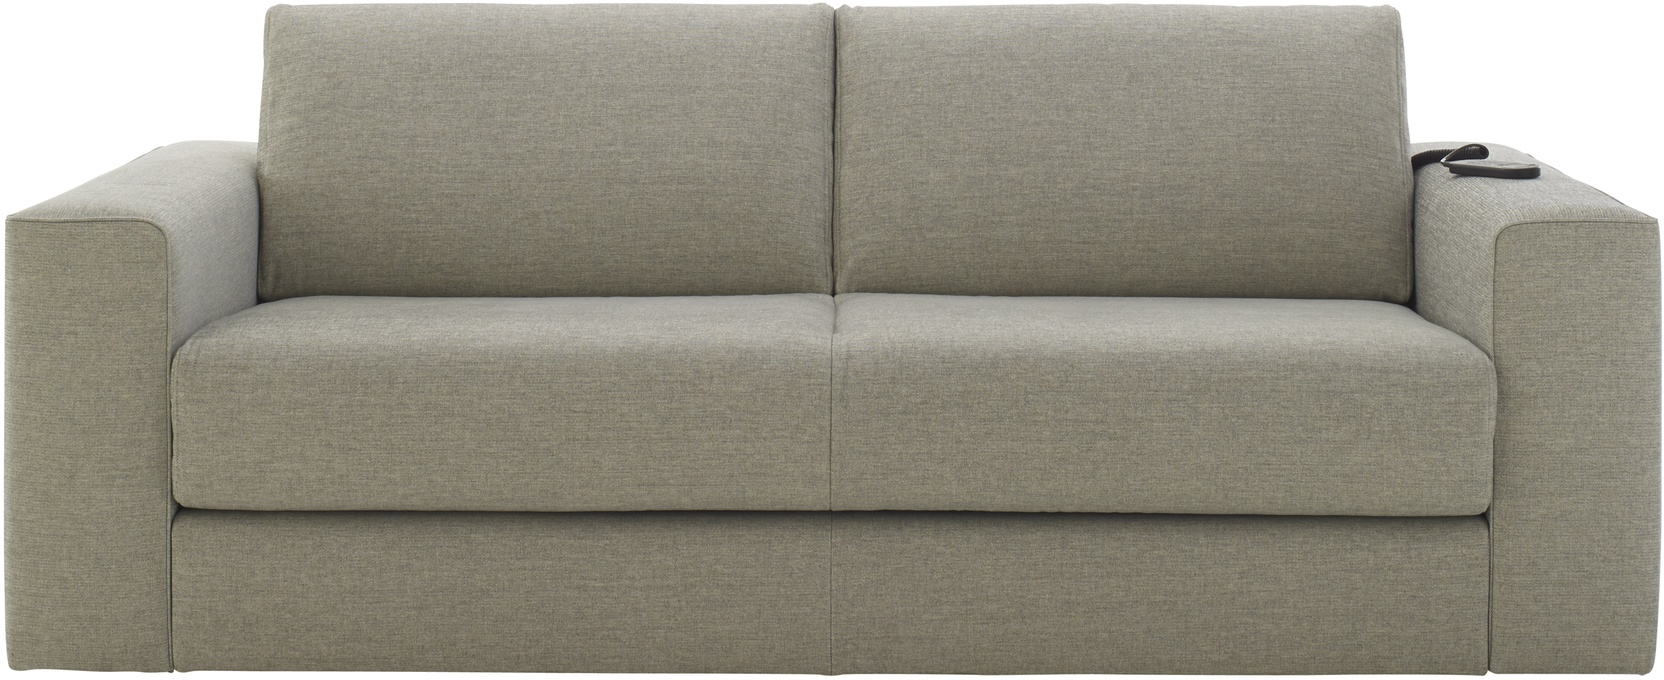 do not disturb sofa beds designer ligne roset. Black Bedroom Furniture Sets. Home Design Ideas